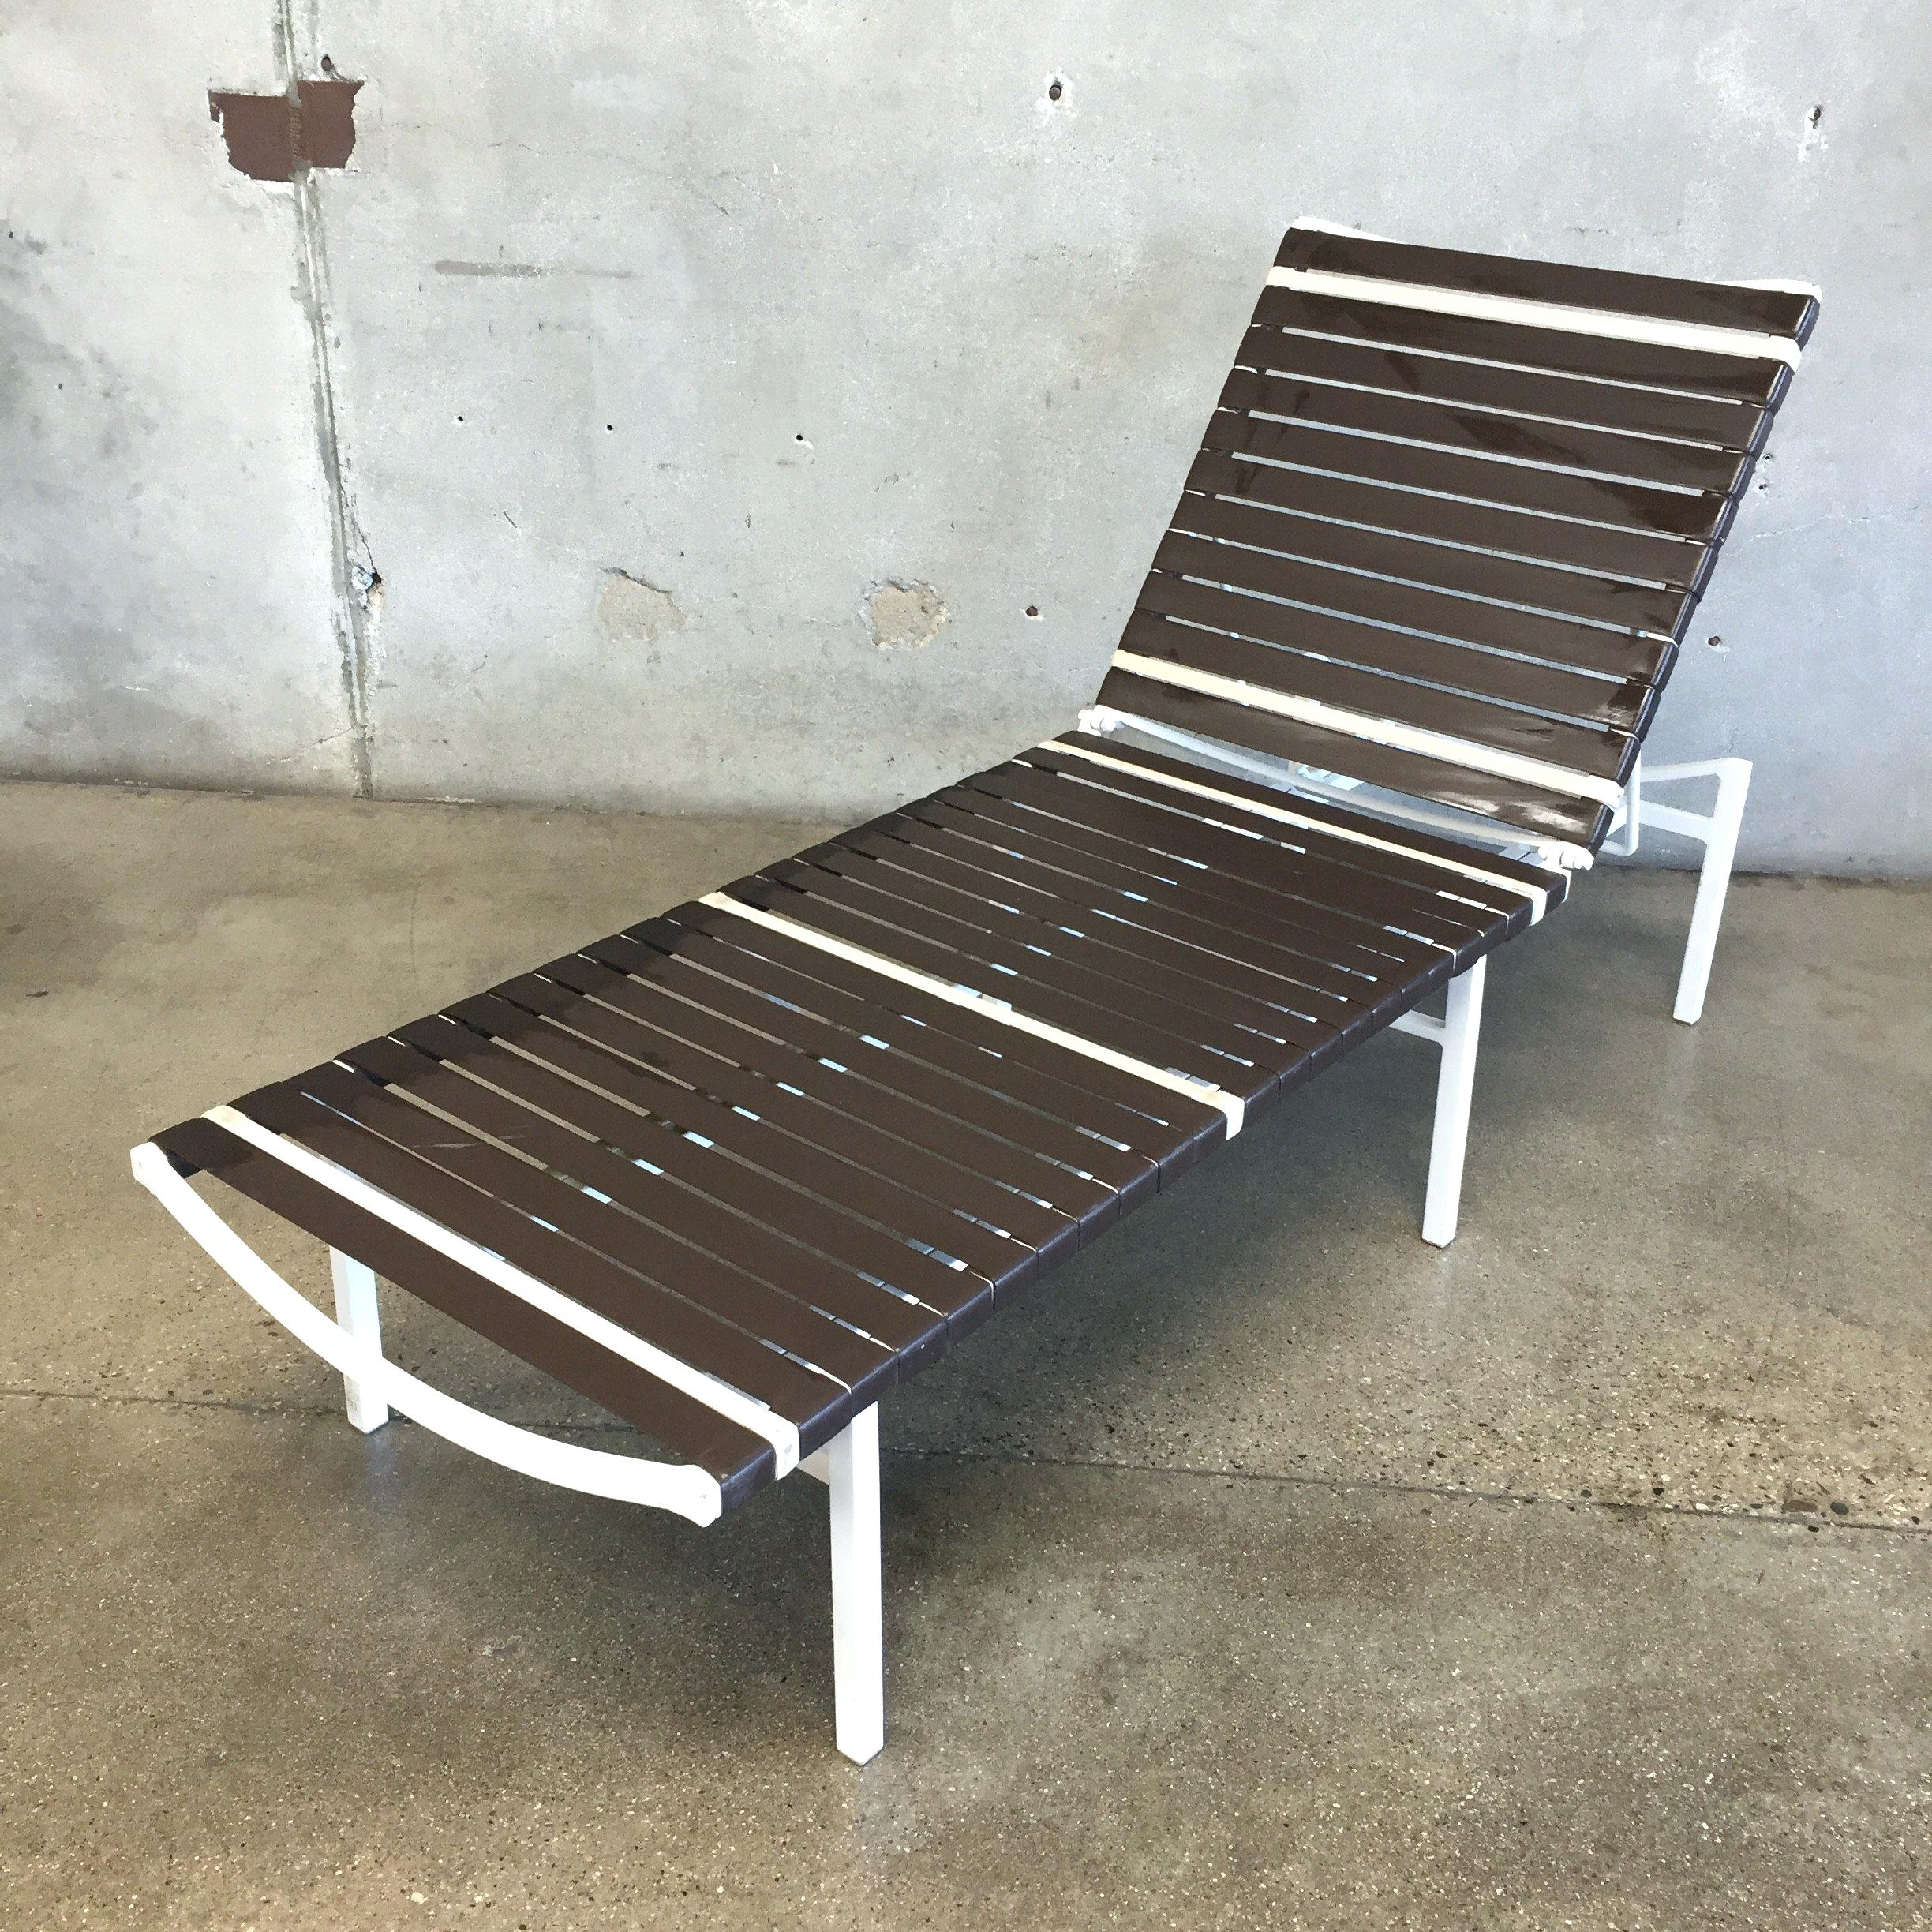 brown longue gallery of showing ideas chairs furniture jordan attachment chaise lounge in outdoor accent popular photo